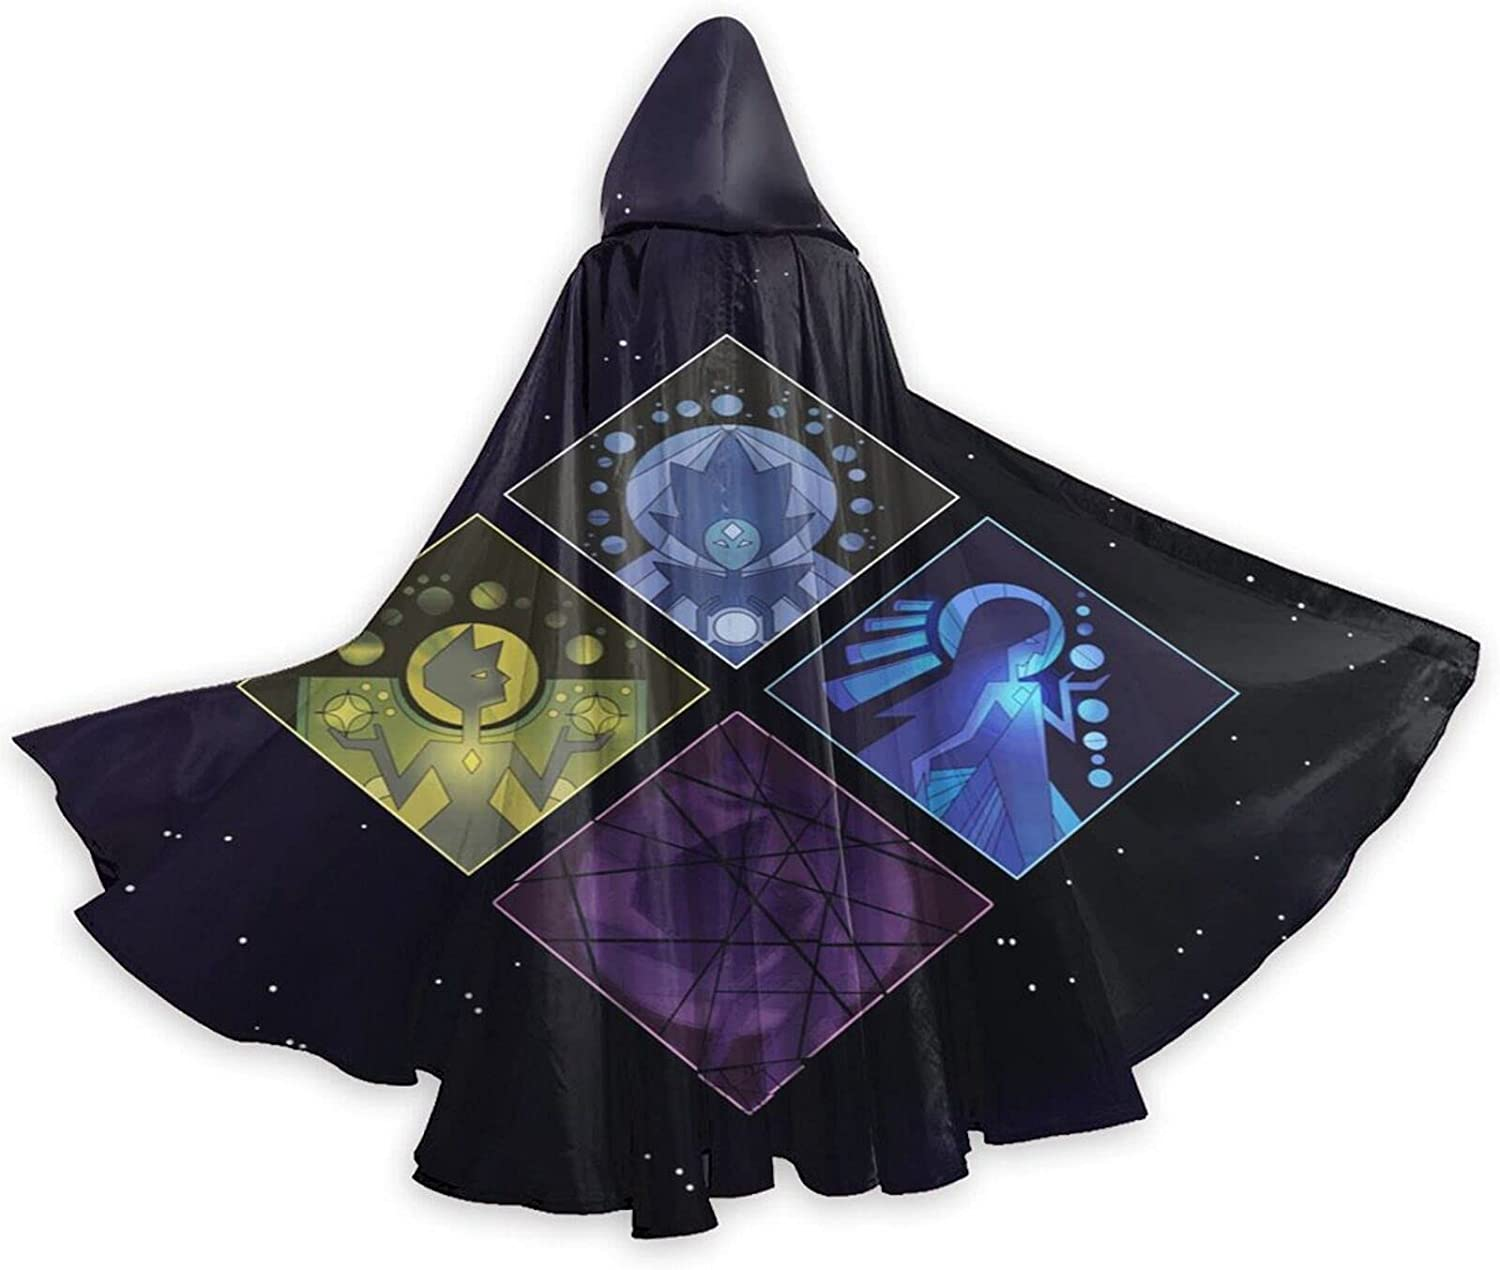 Unisex S-teven Un-iverse Gorgeous Anime Inexpensive Hooded Robe Wizard Halloween Cloa